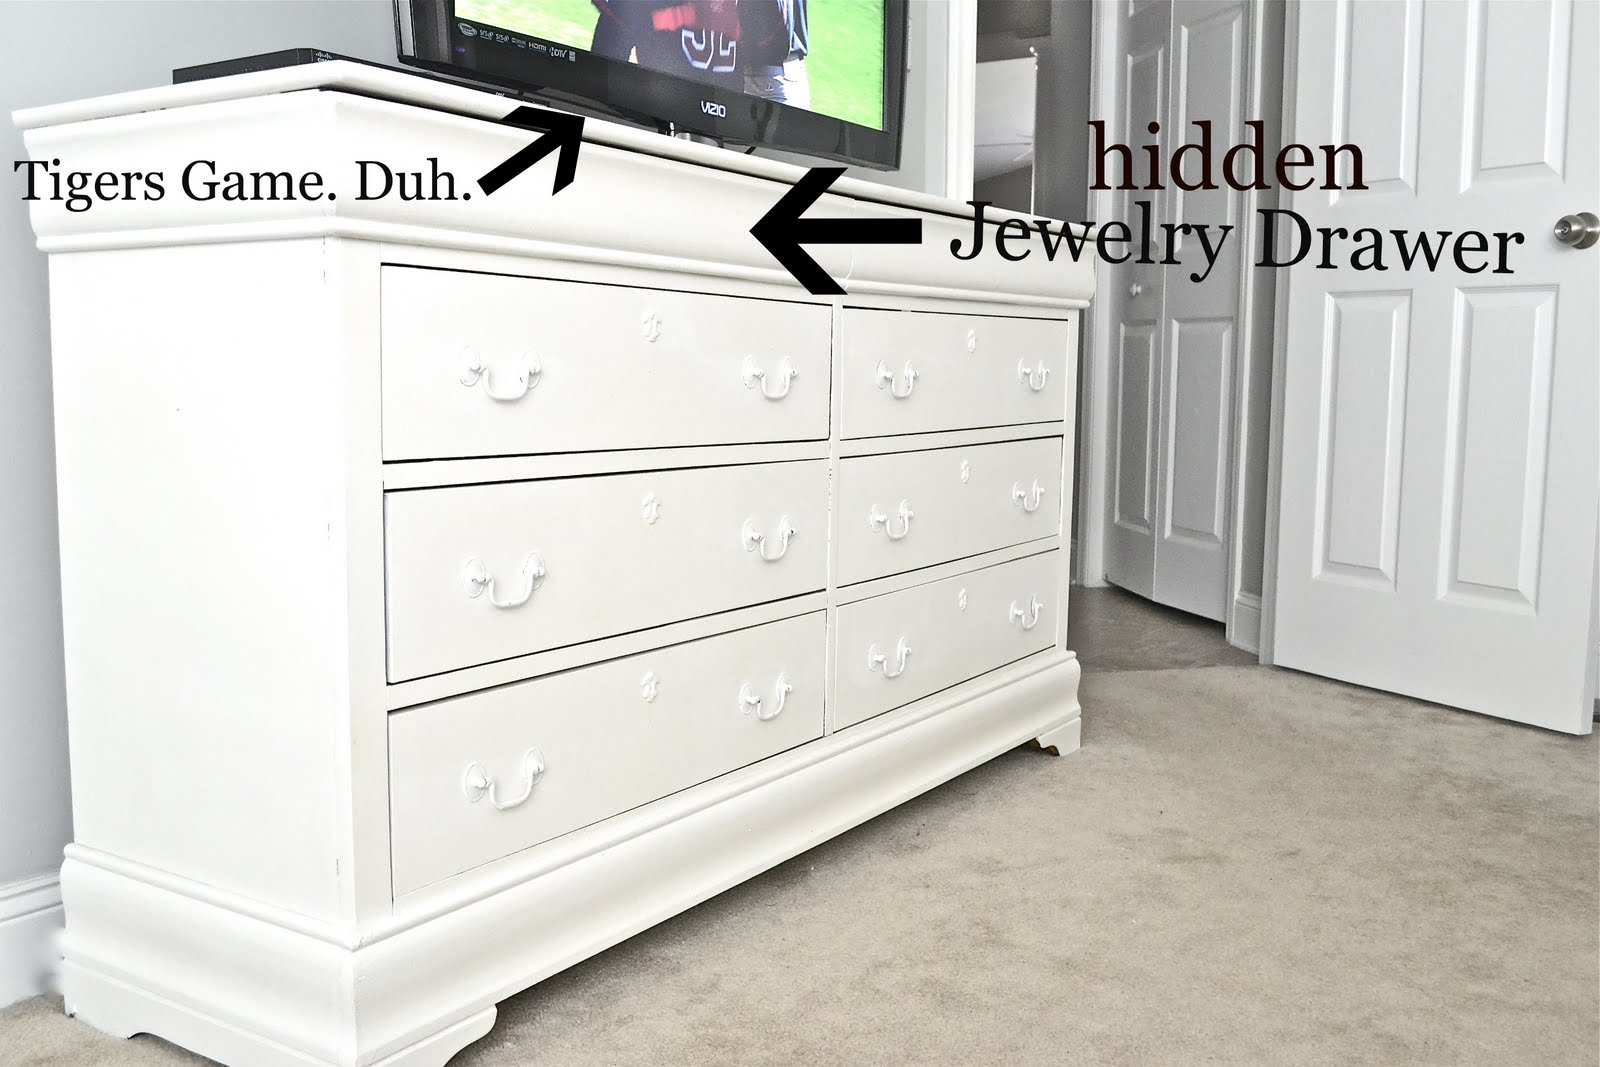 furniture lr dressers bedroom cases moser product shown thos bedroomcases with jewelry situ dresser category here sevendrawersidechest fnamemoser drawer